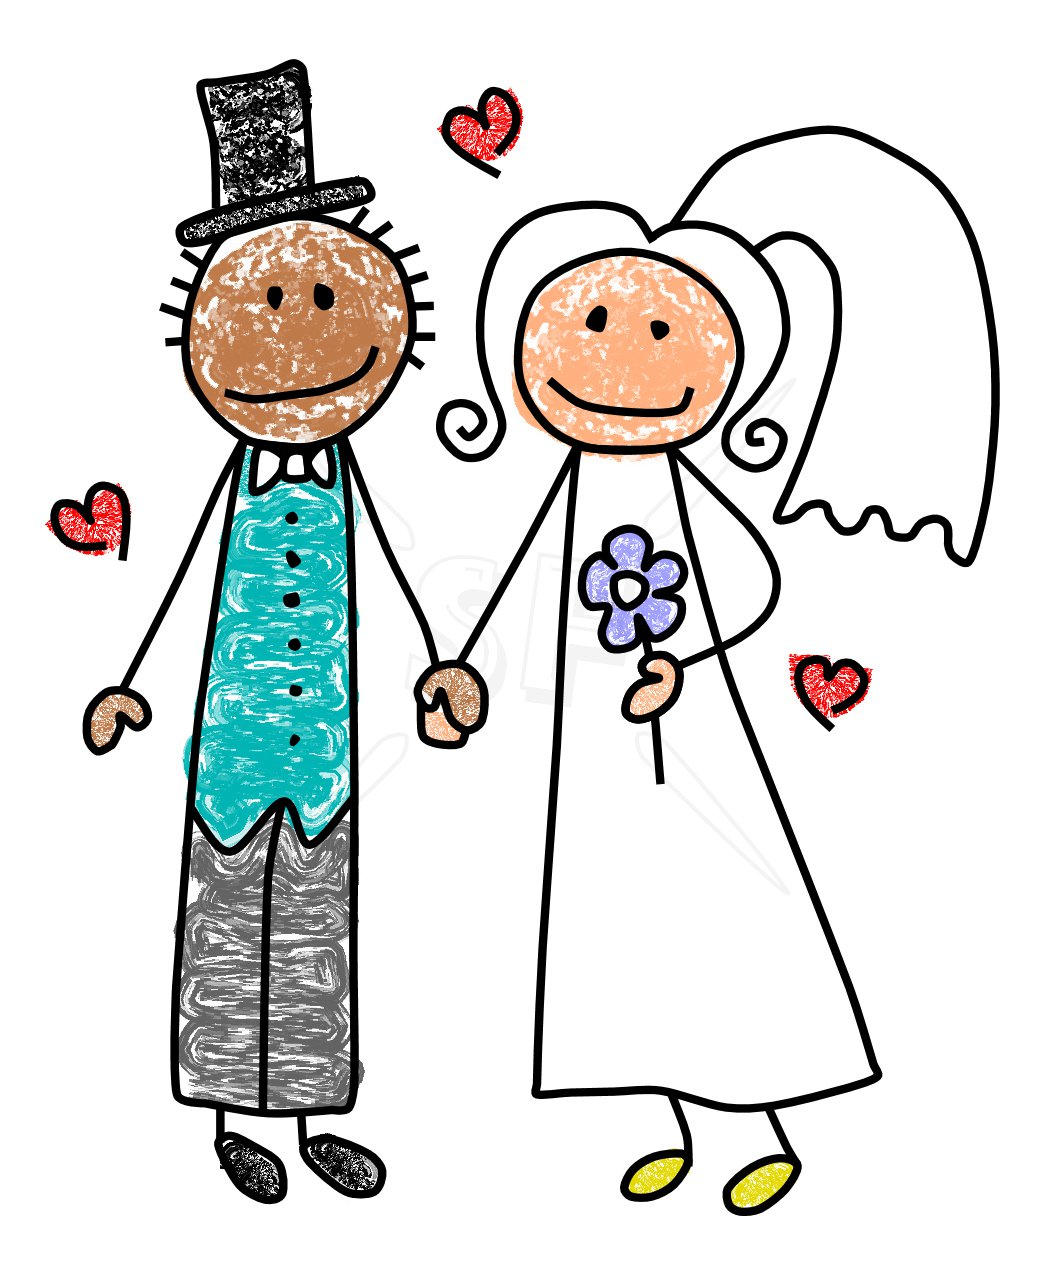 Groom stick figure clipart black and white image library download Bride And Groom Clipart Black And White | Free download best ... image library download